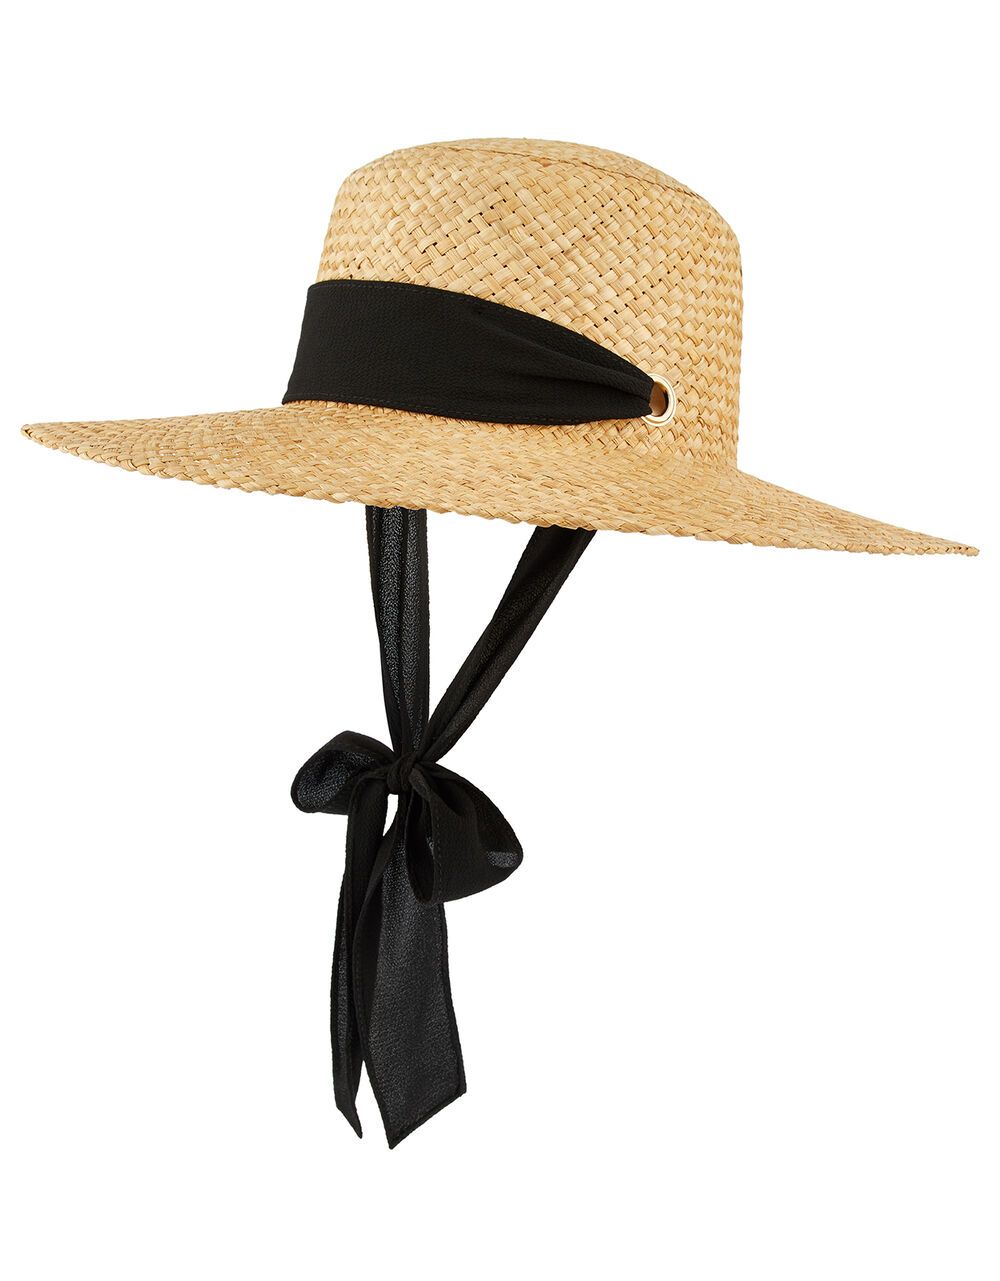 Straw Boater with Chiffon Tie, , large